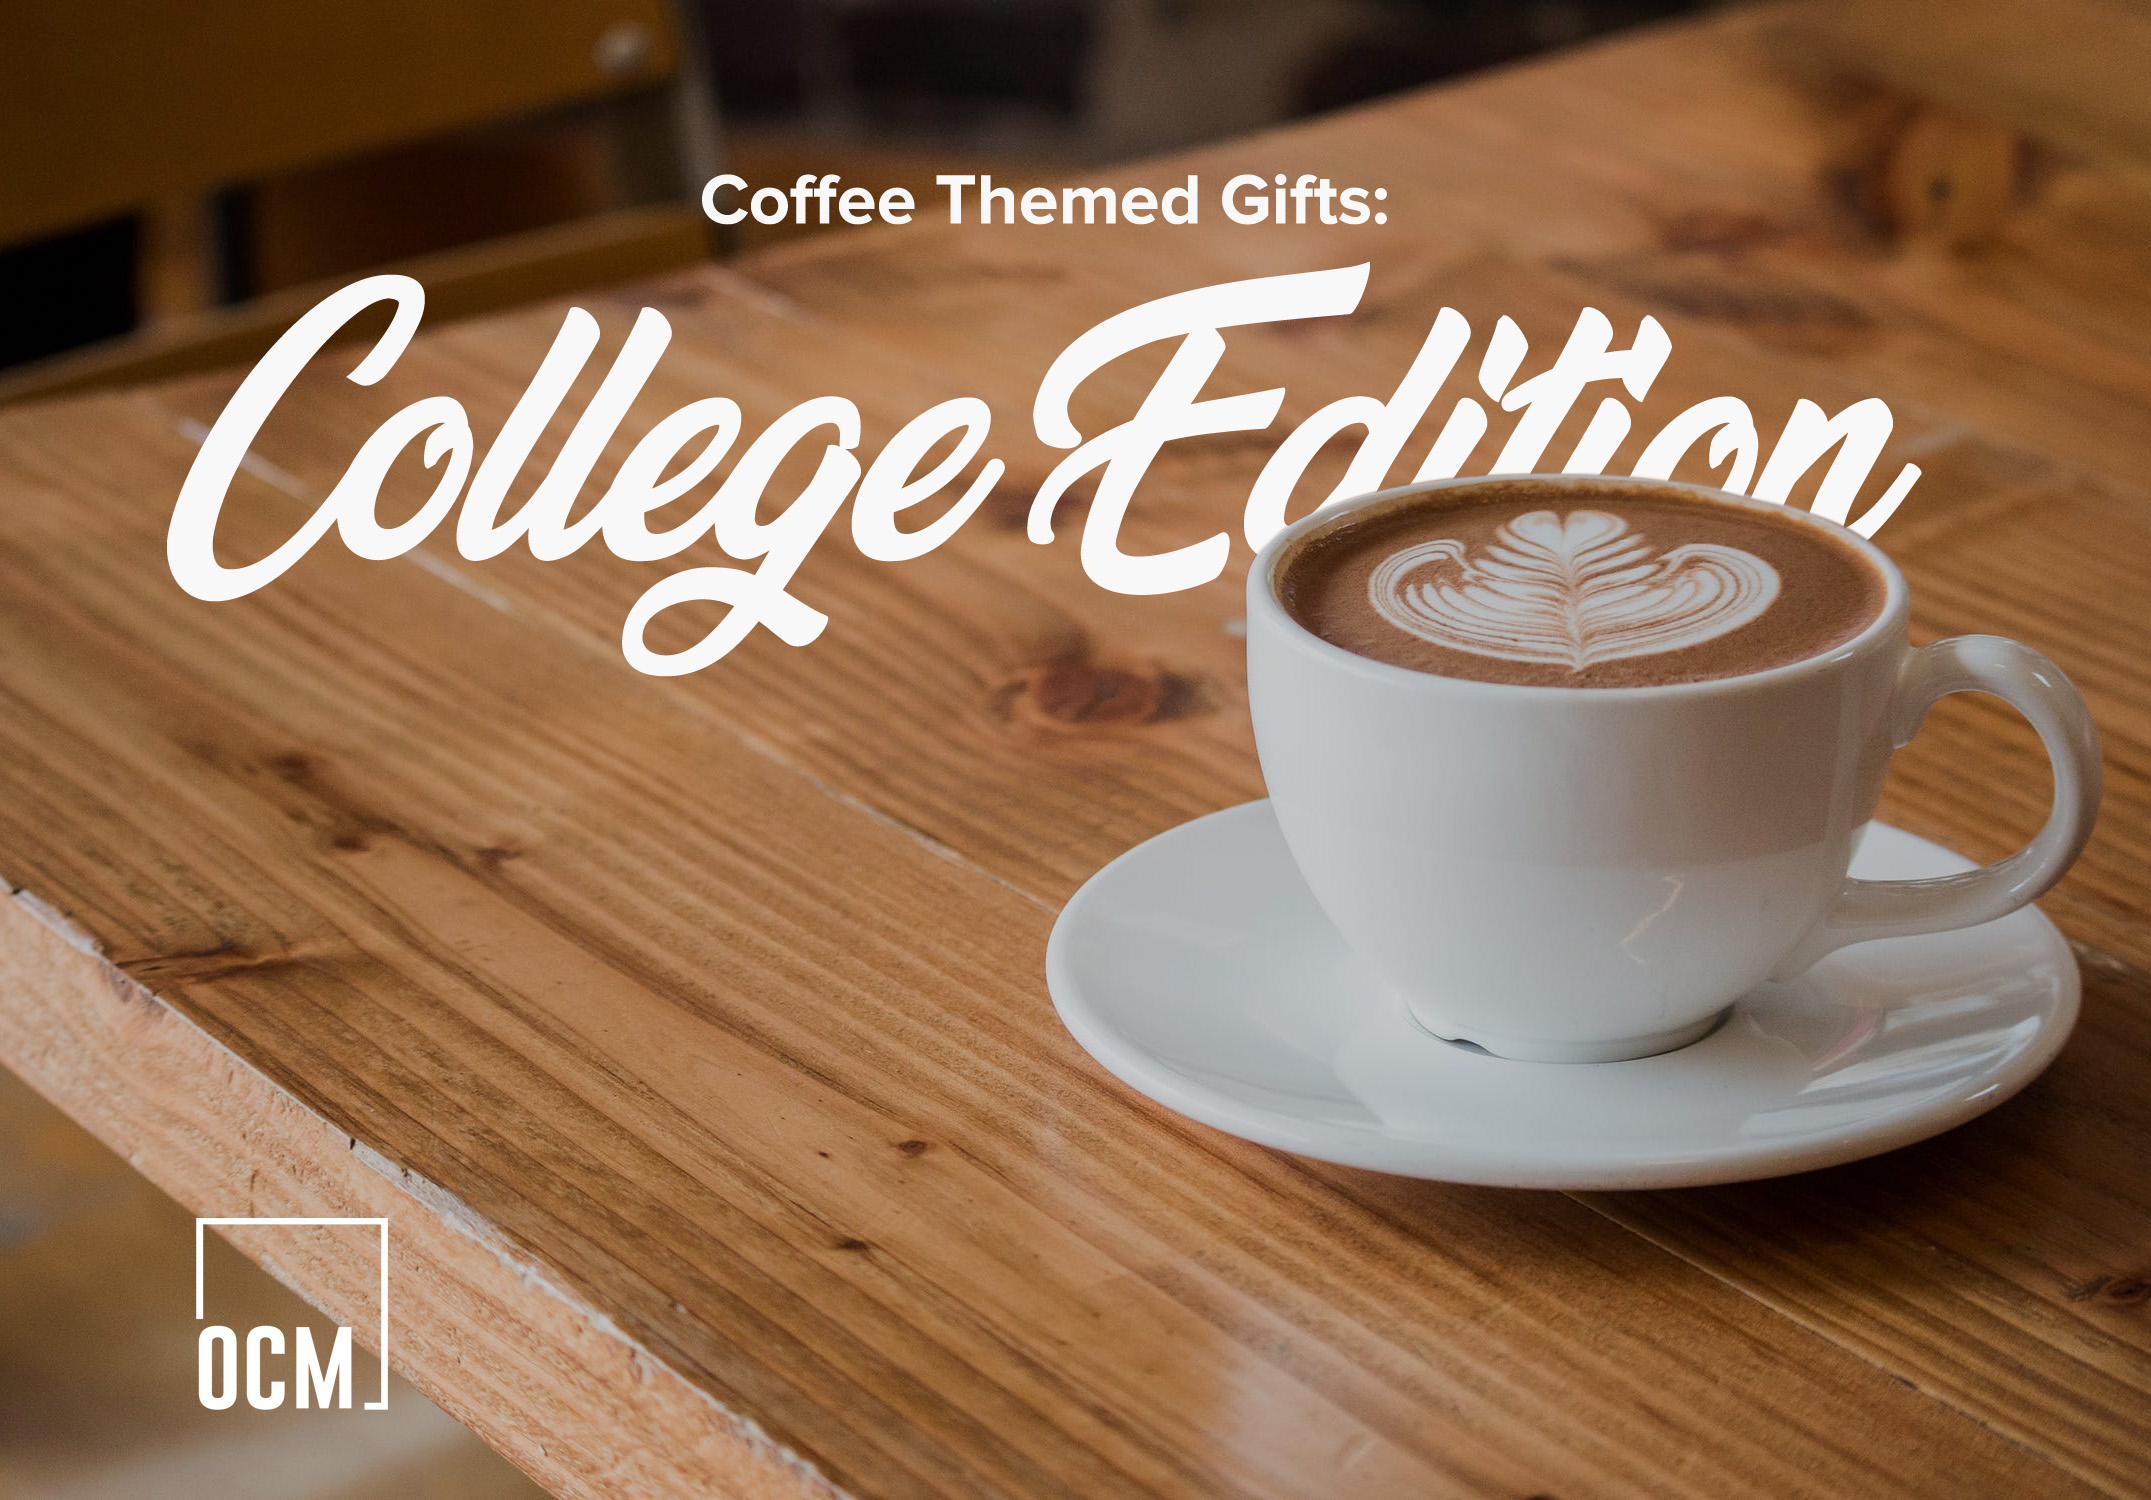 Coffee Themed Gifts: College Edition